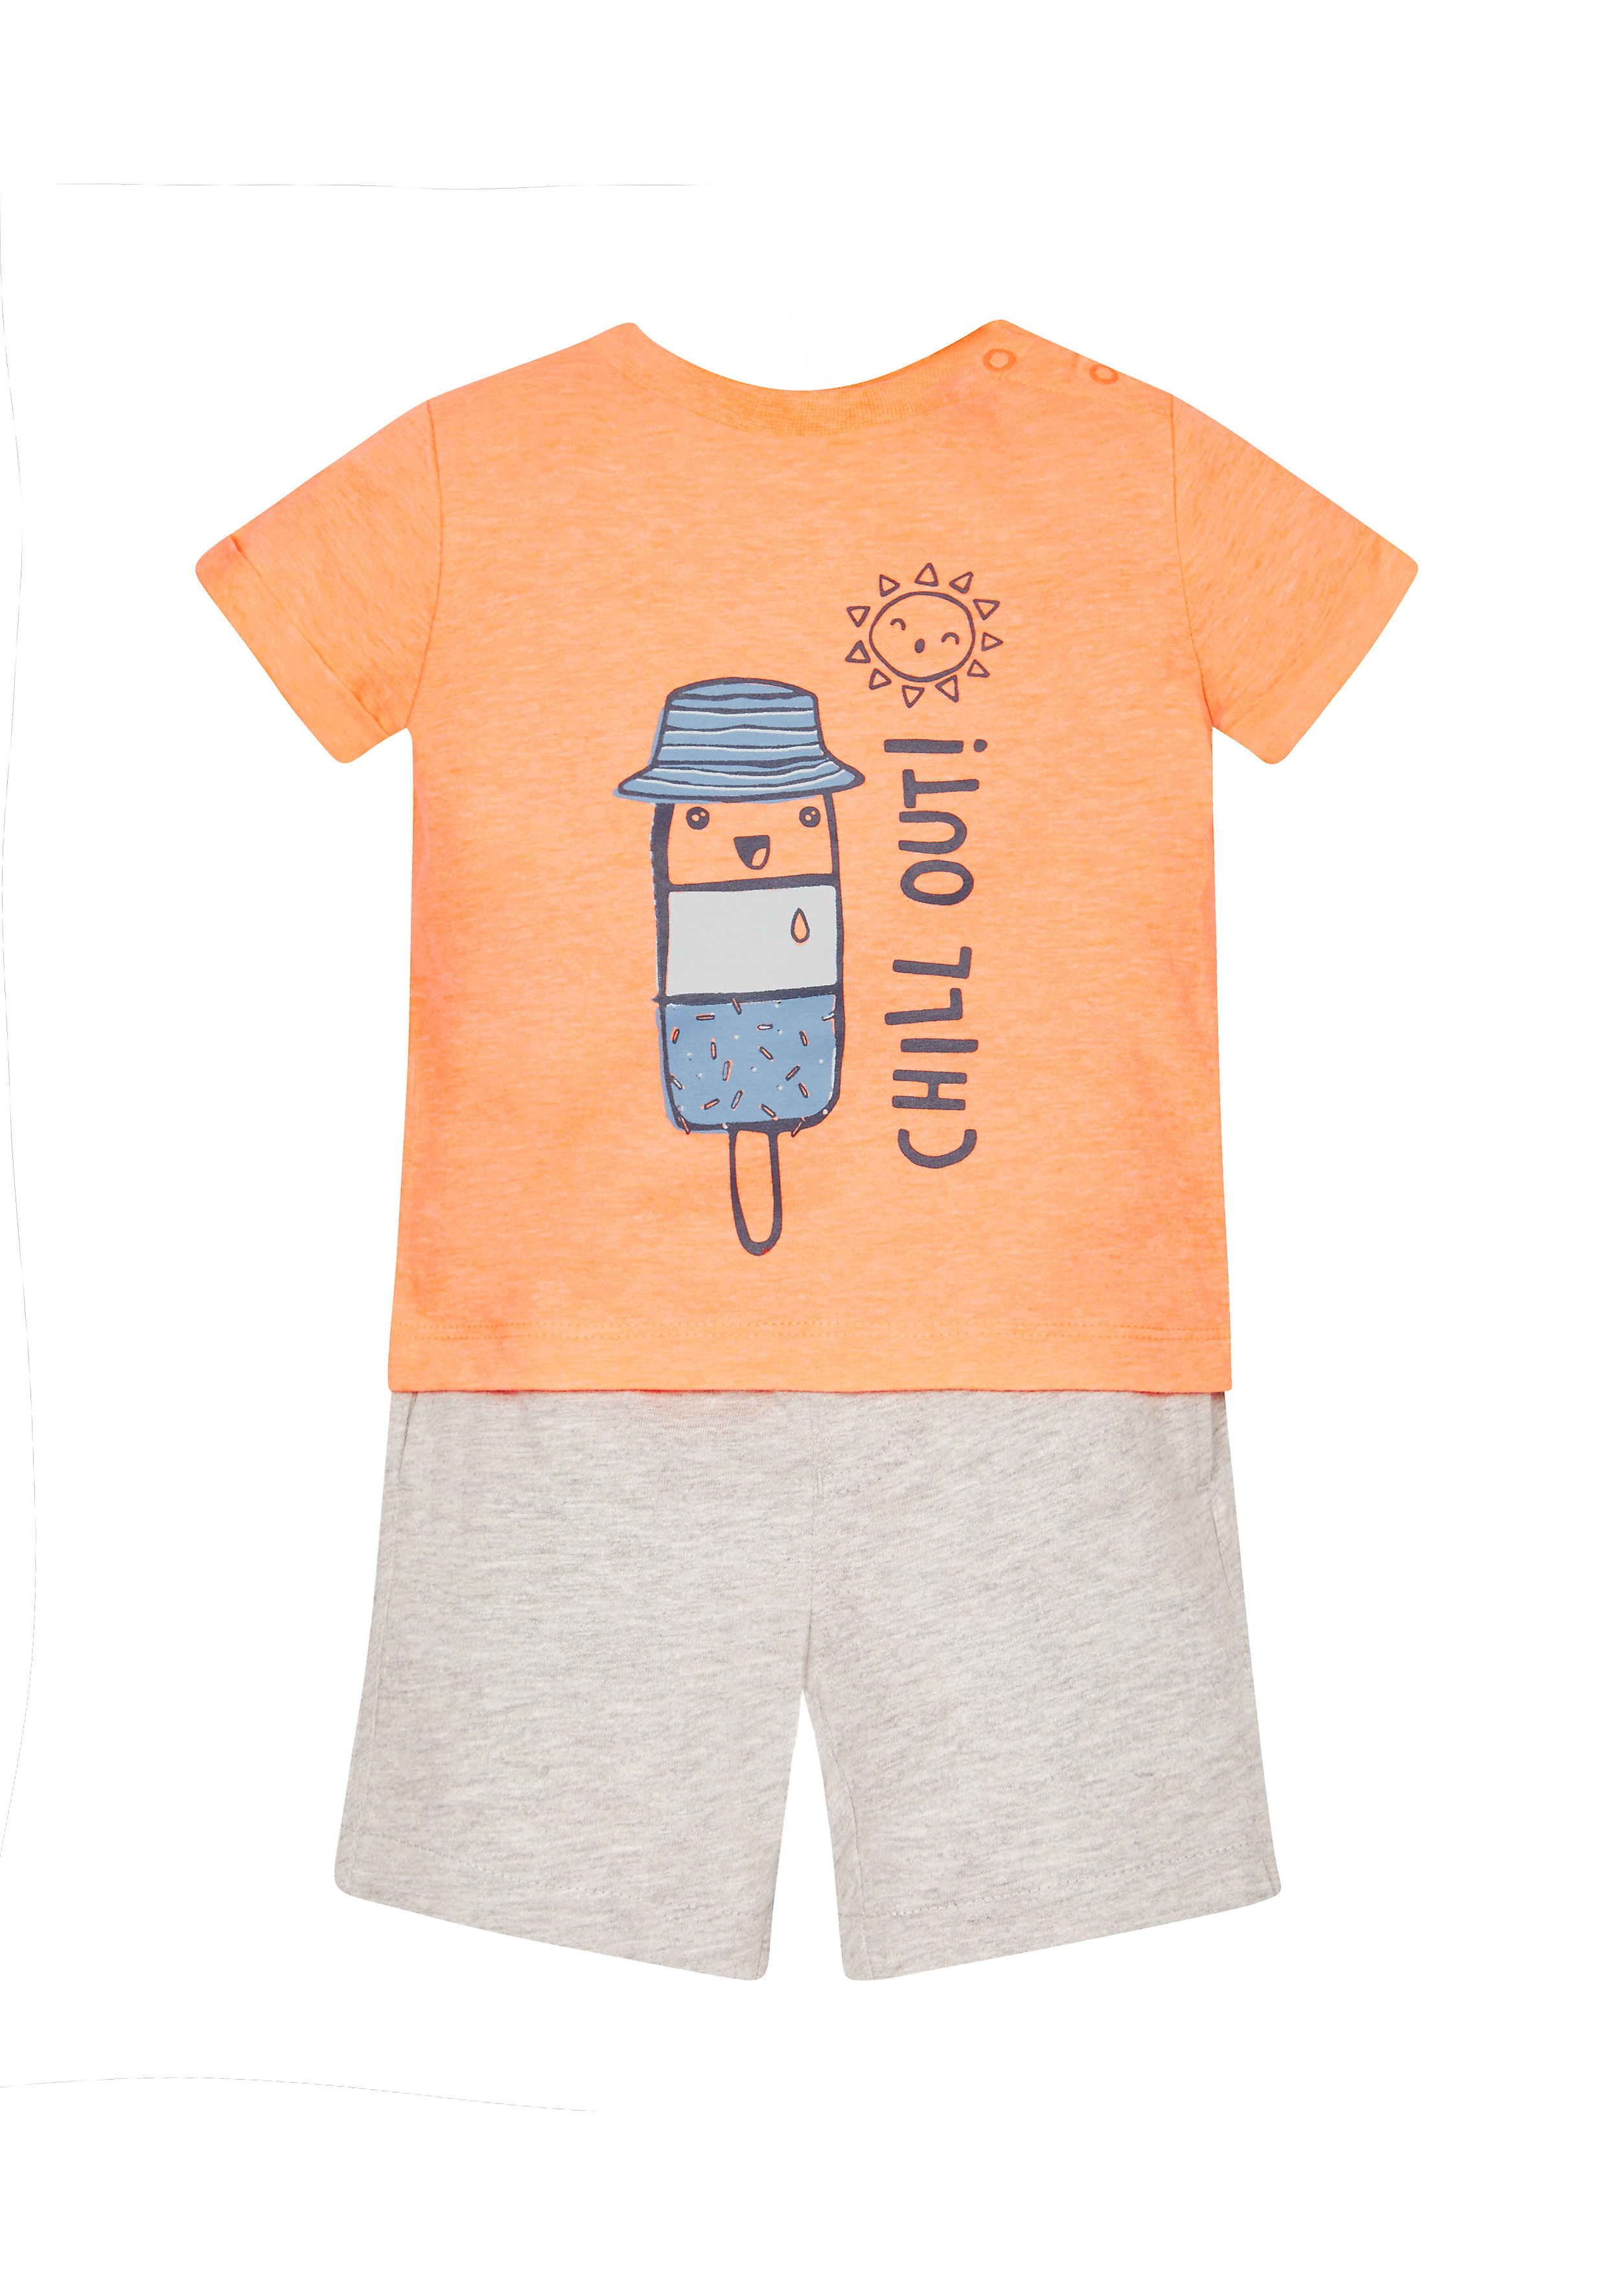 Mothercare | Boys 'Chill Out' Tee And Shorts Set - Orange